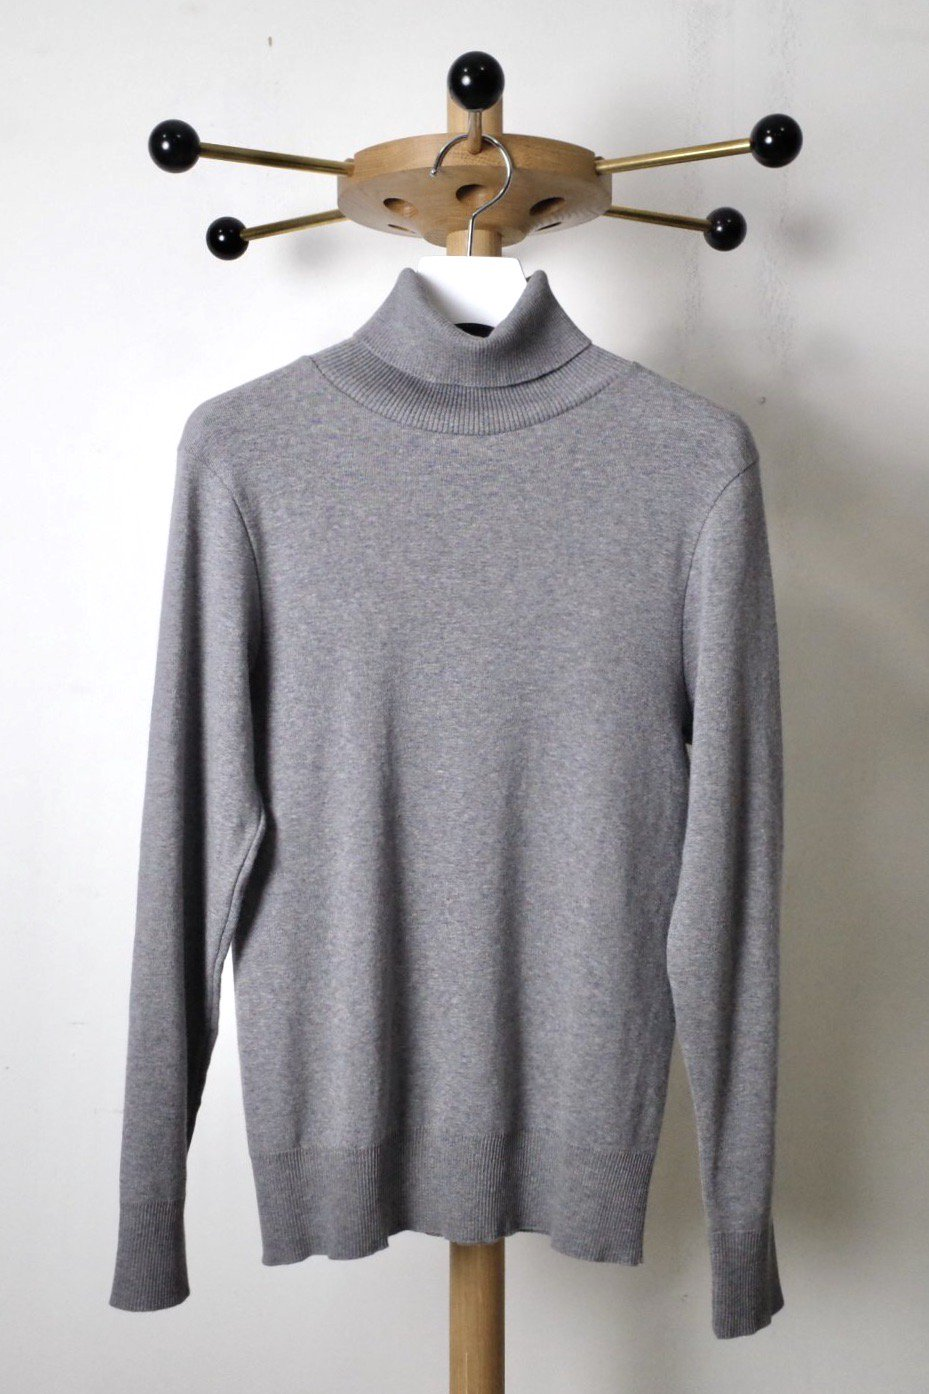 <img class='new_mark_img1' src='https://img.shop-pro.jp/img/new/icons5.gif' style='border:none;display:inline;margin:0px;padding:0px;width:auto;' />gicipi ジチピ-TURTLENECK TOPS-ANANAS-GRAY-